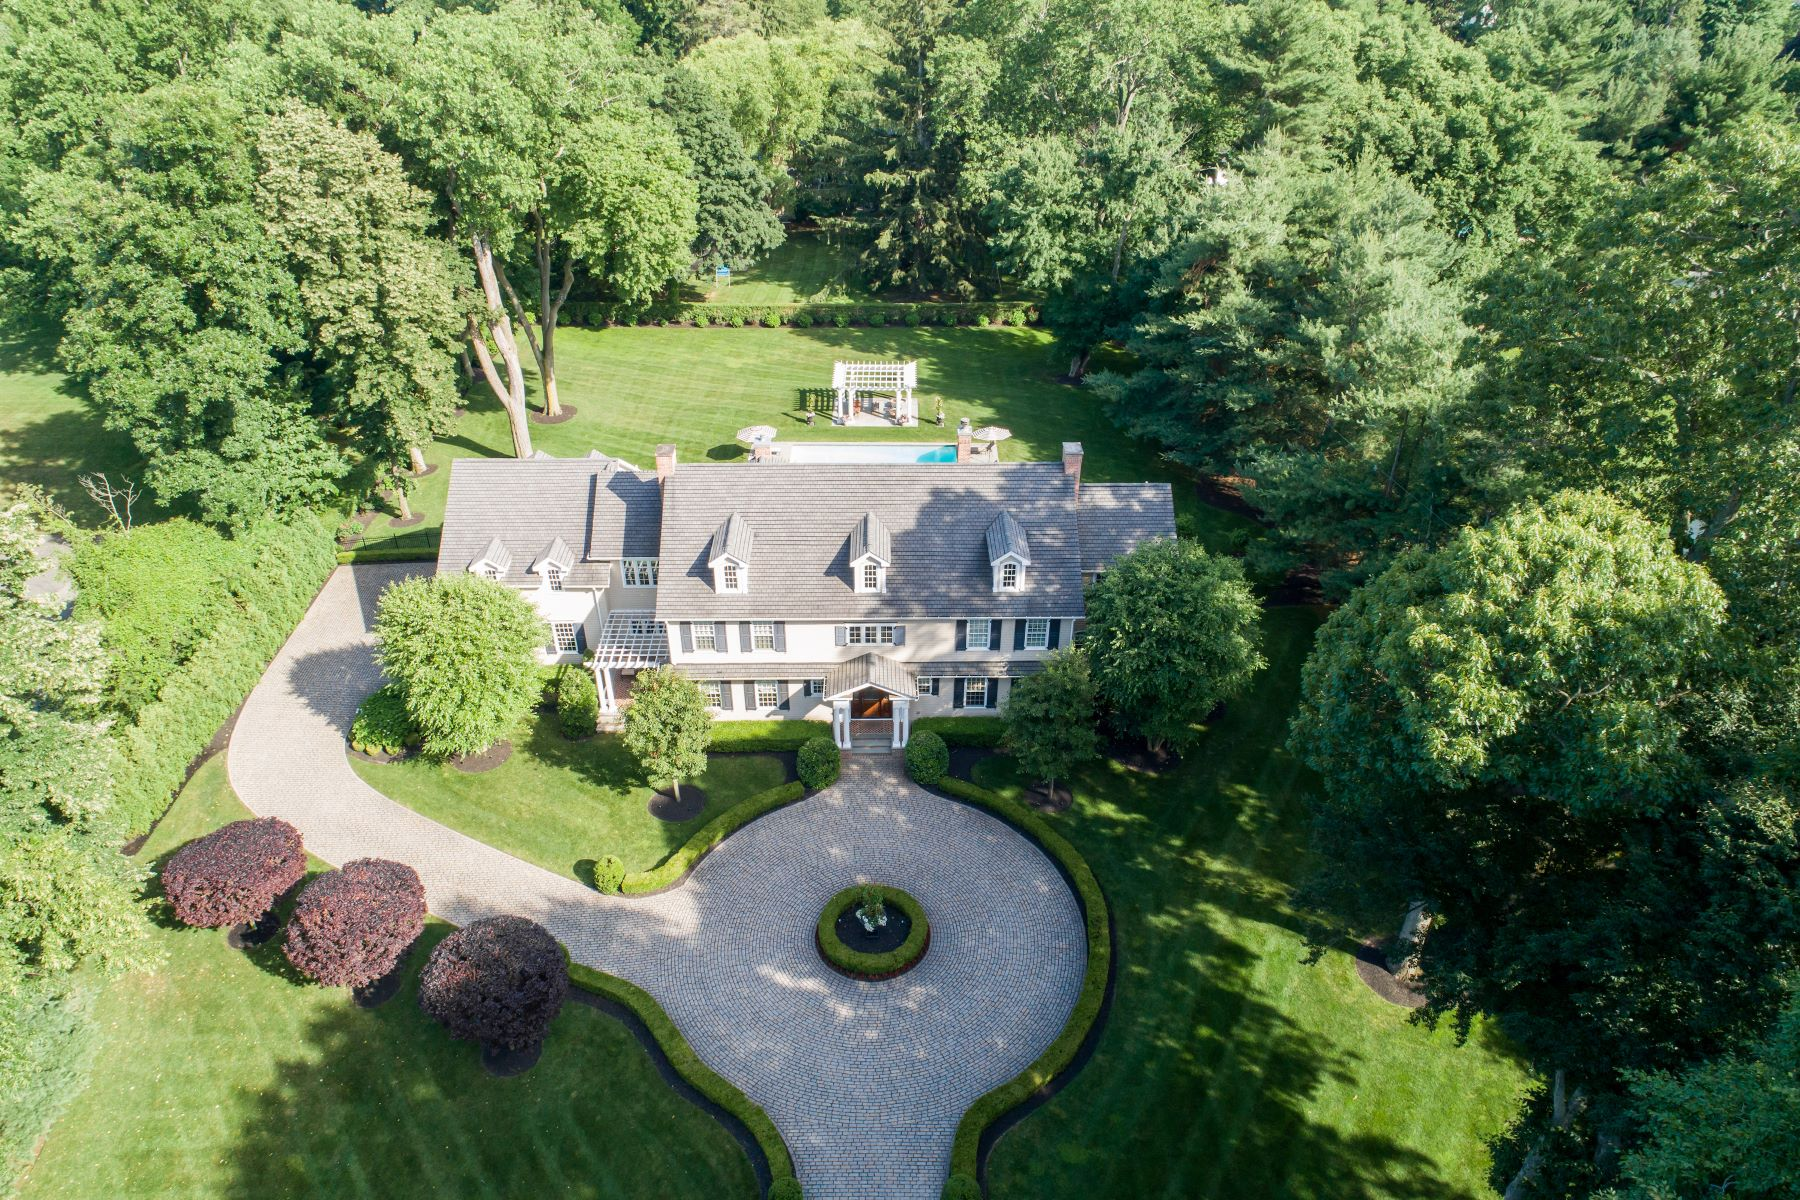 Single Family Home for Sale at Live Inspired 131 Ridge Rd, Rumson, New Jersey 07760 United States